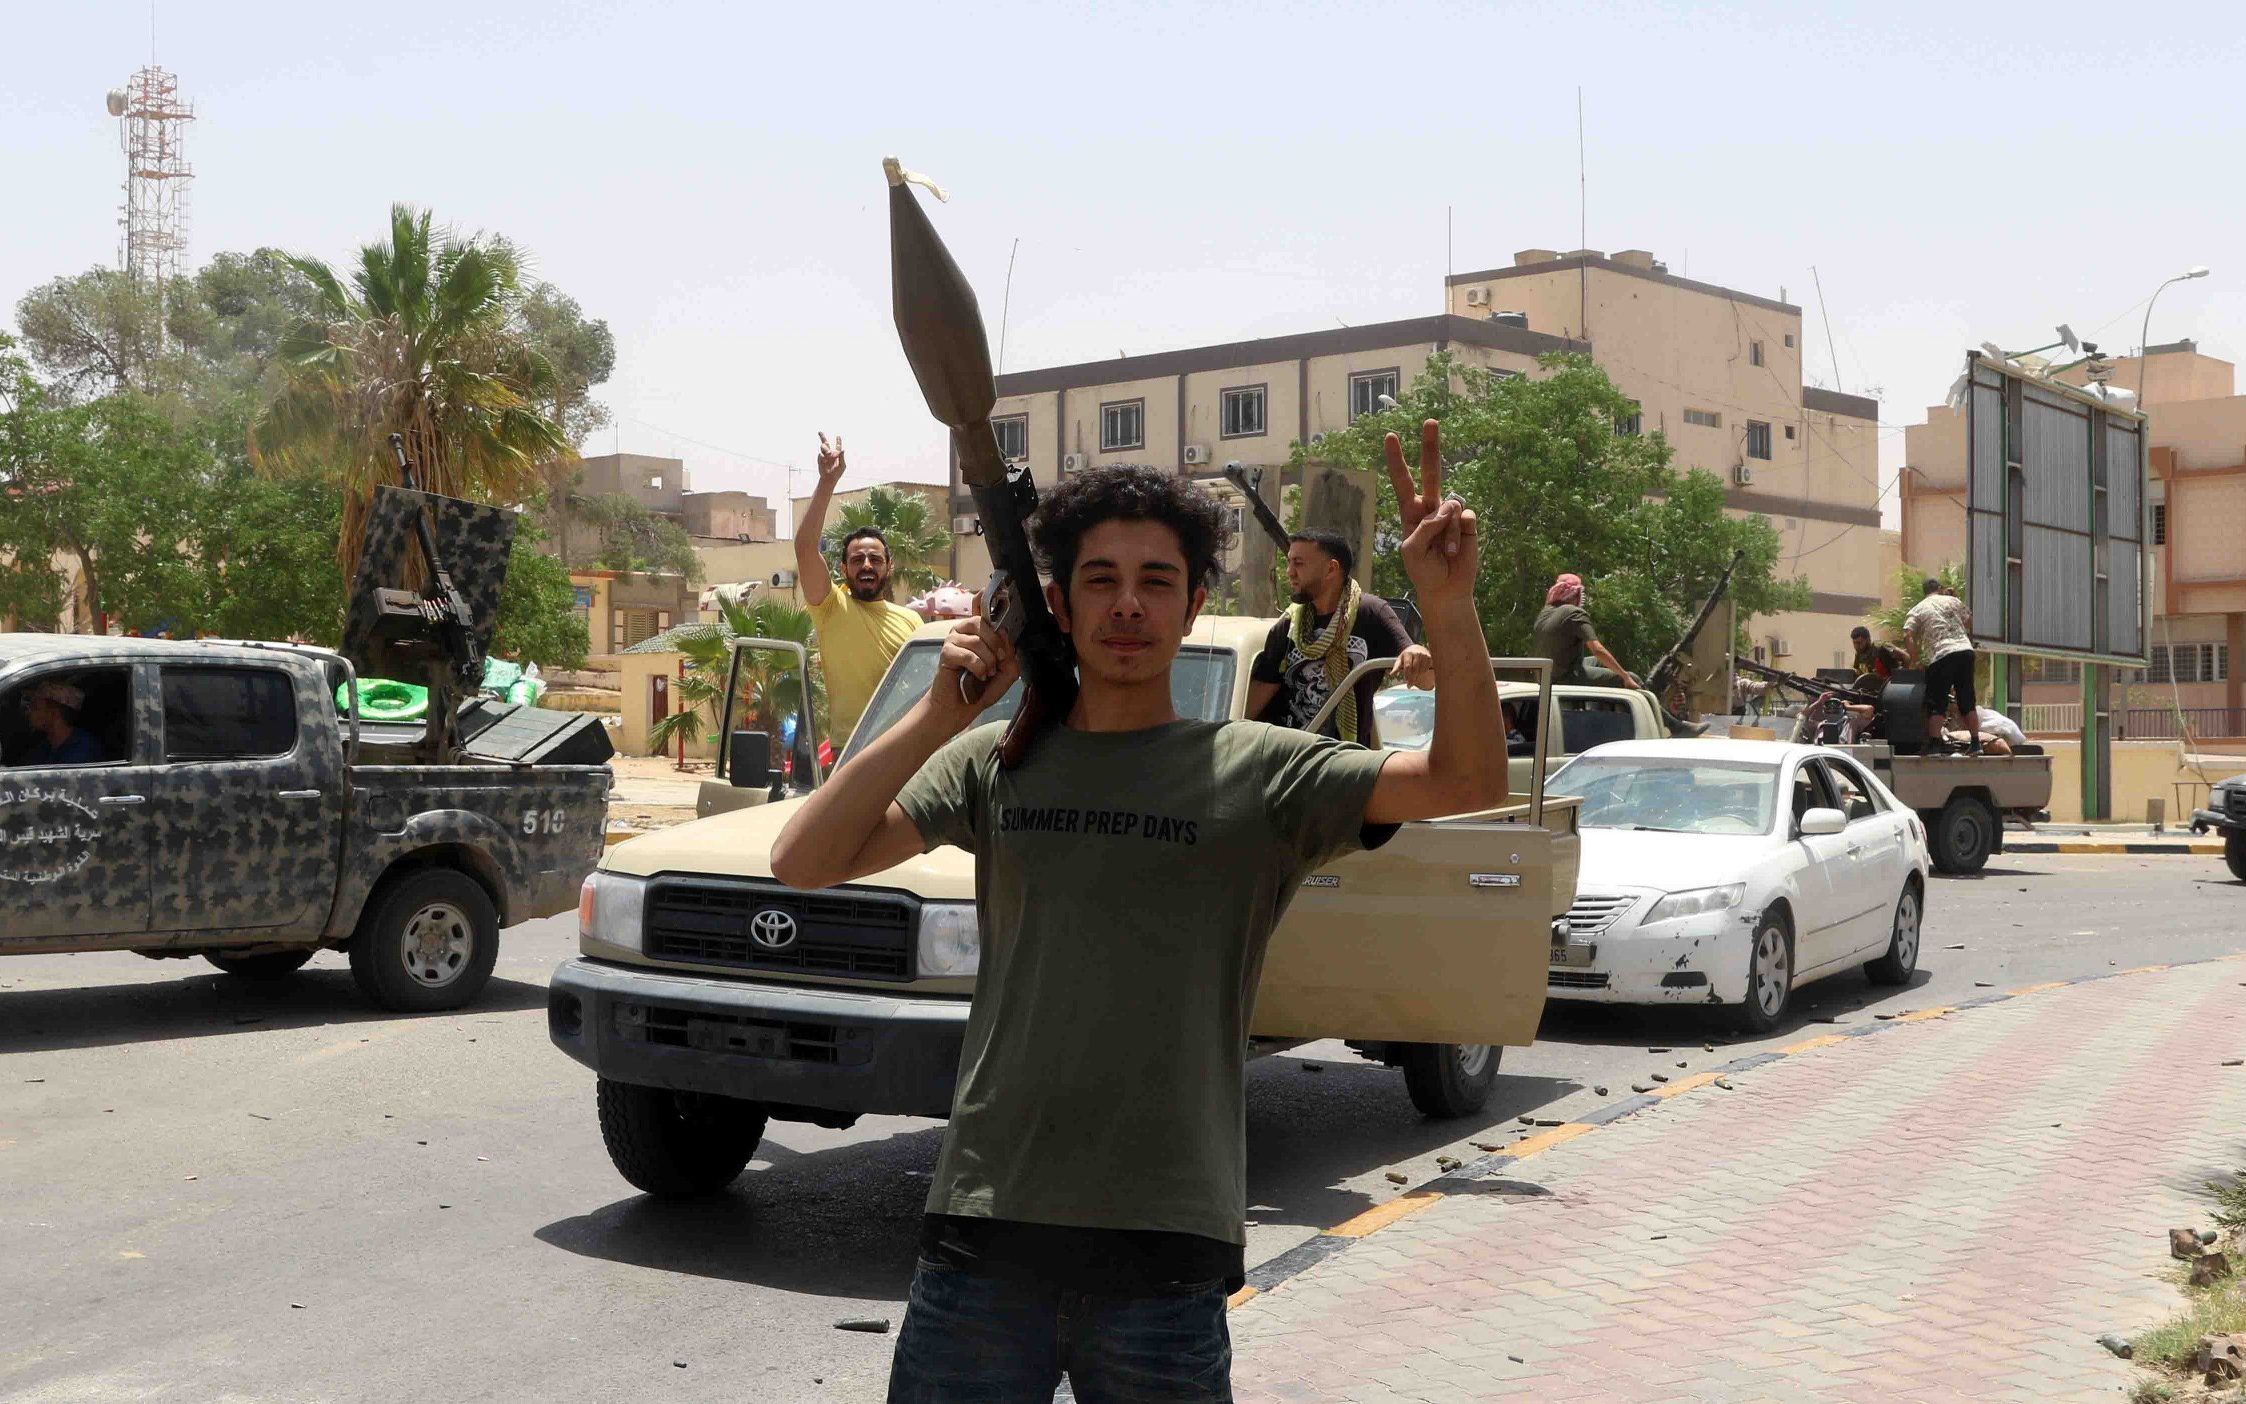 Egypt proposes new Libya plan after collapse of Haftar offensive